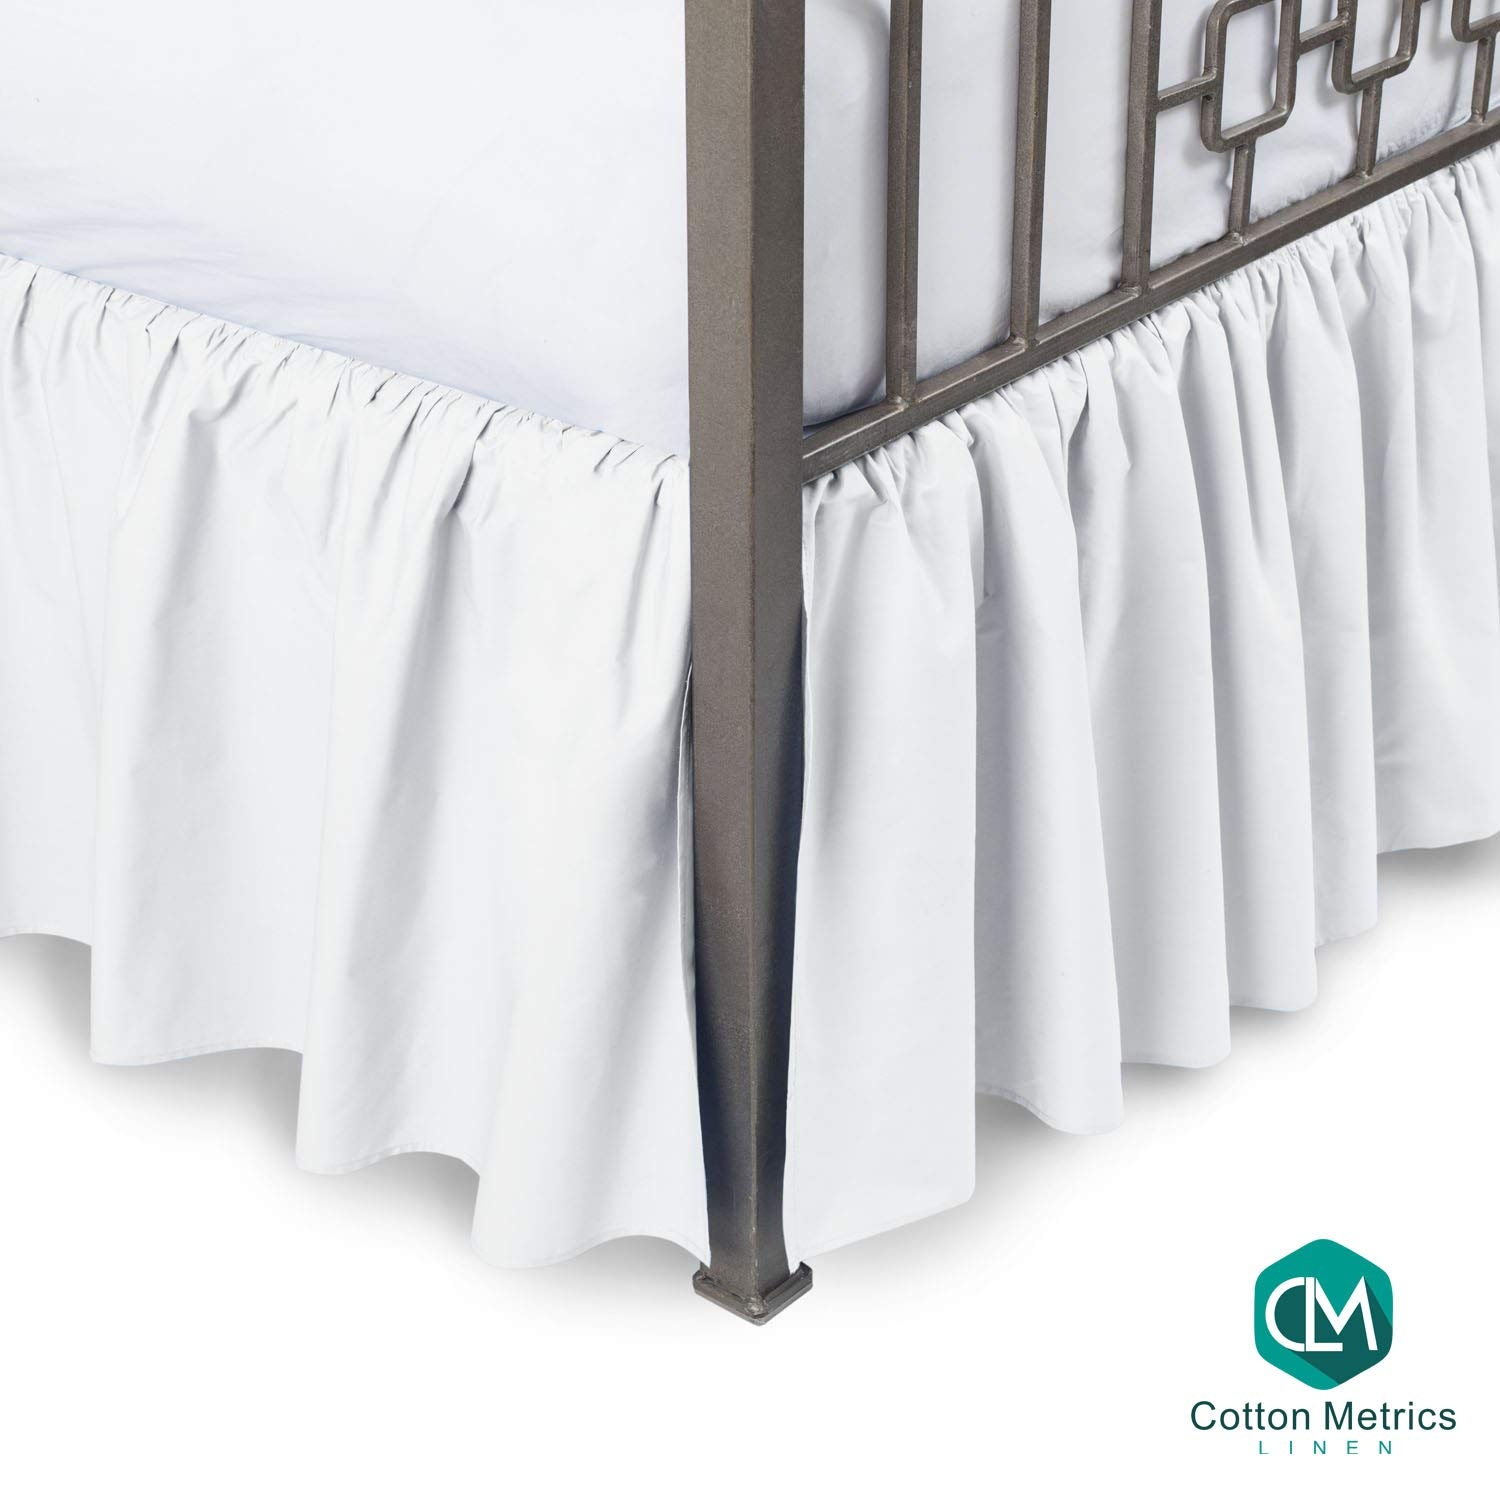 Cotton Metrics Linen Present 800TC Hotel Quality 100% Egyptian Cotton Dust Ruffle Bed Skirt 18'' Drop Length King Size White Solid